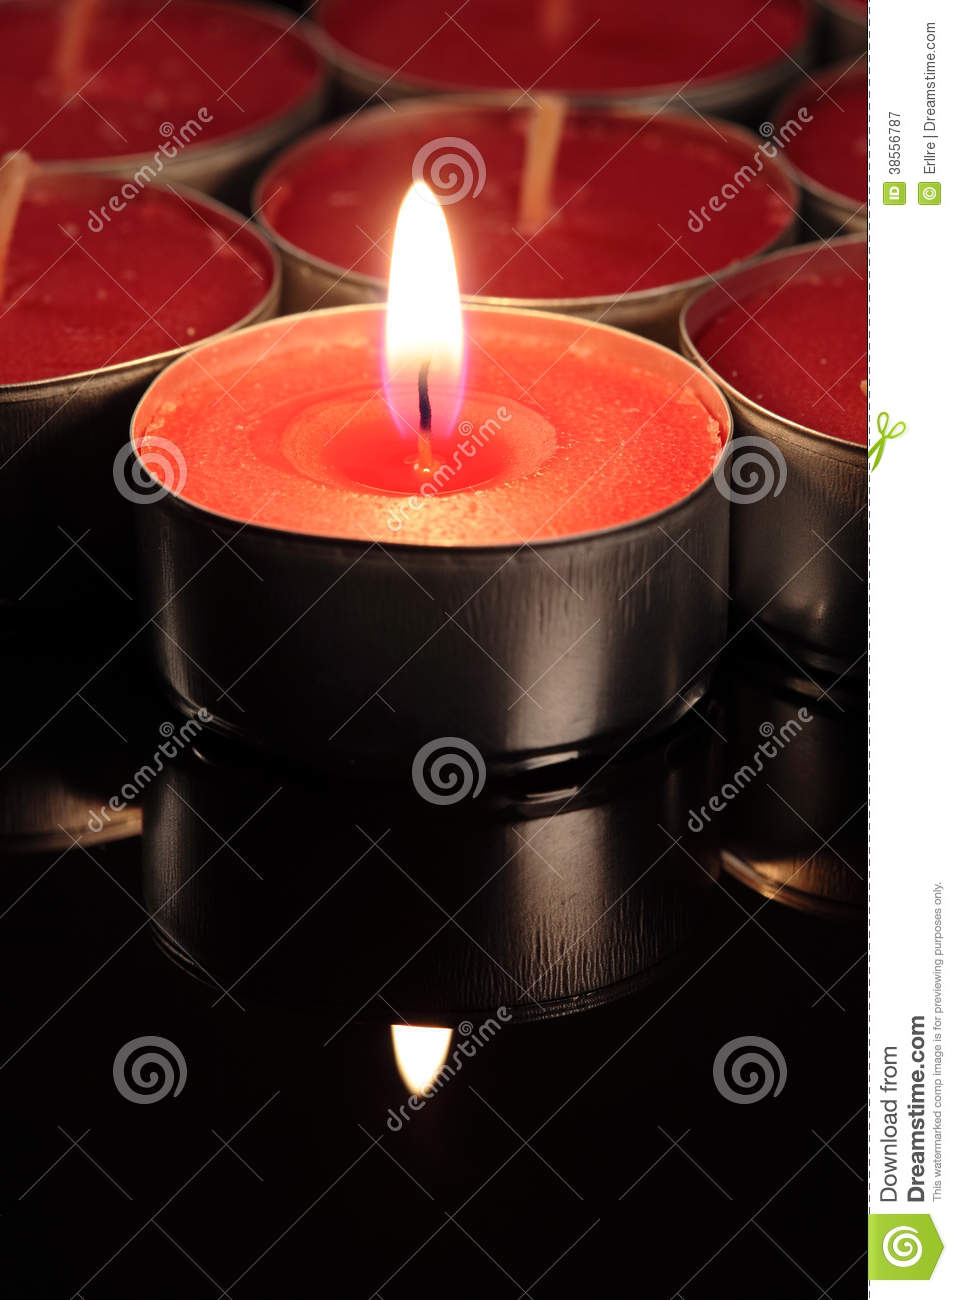 red candle black background - photo #43